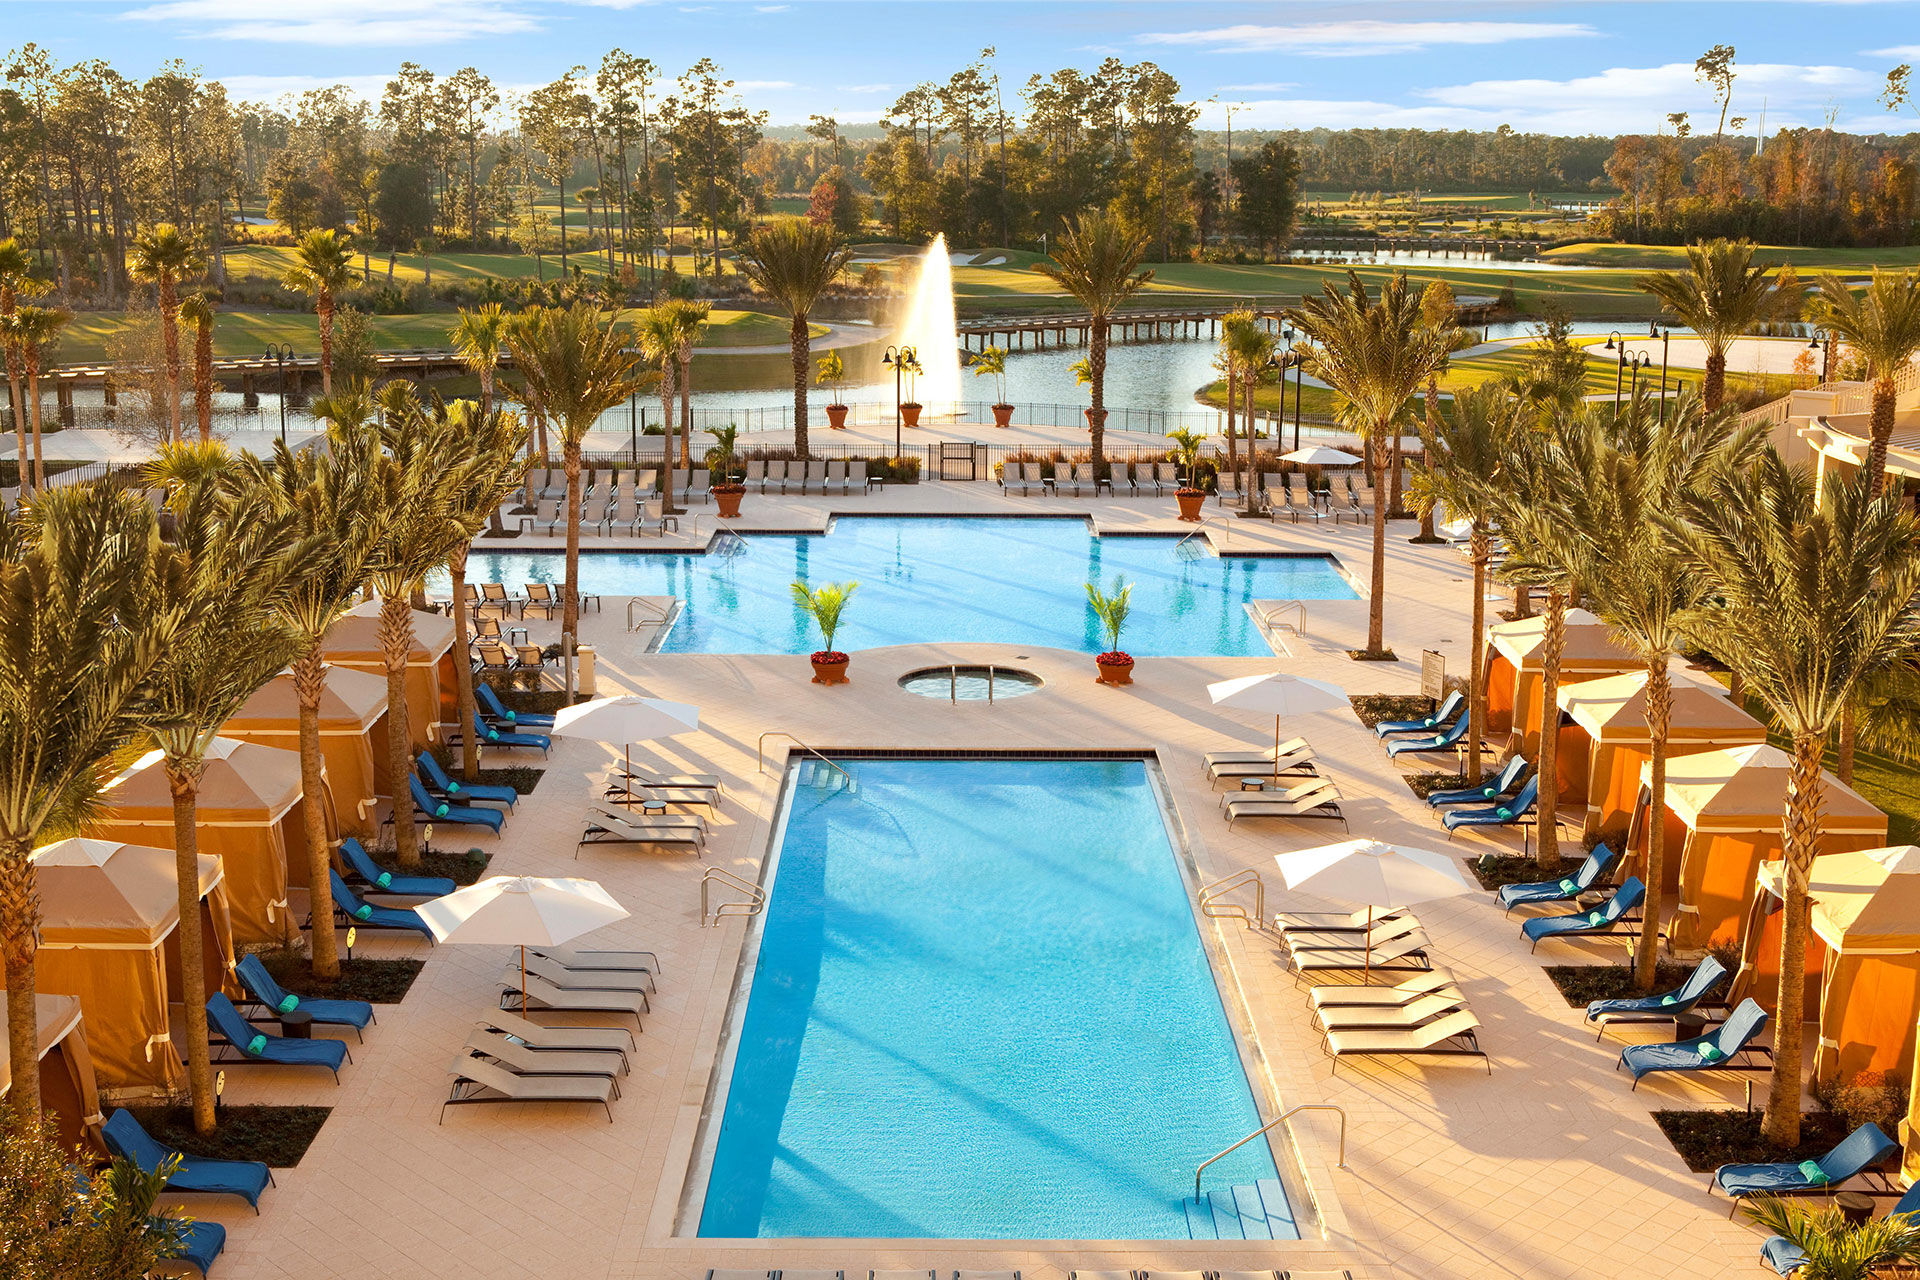 Waldorf Astoria Orlando Pool; Courtesy of Waldorf Astoria Orlando